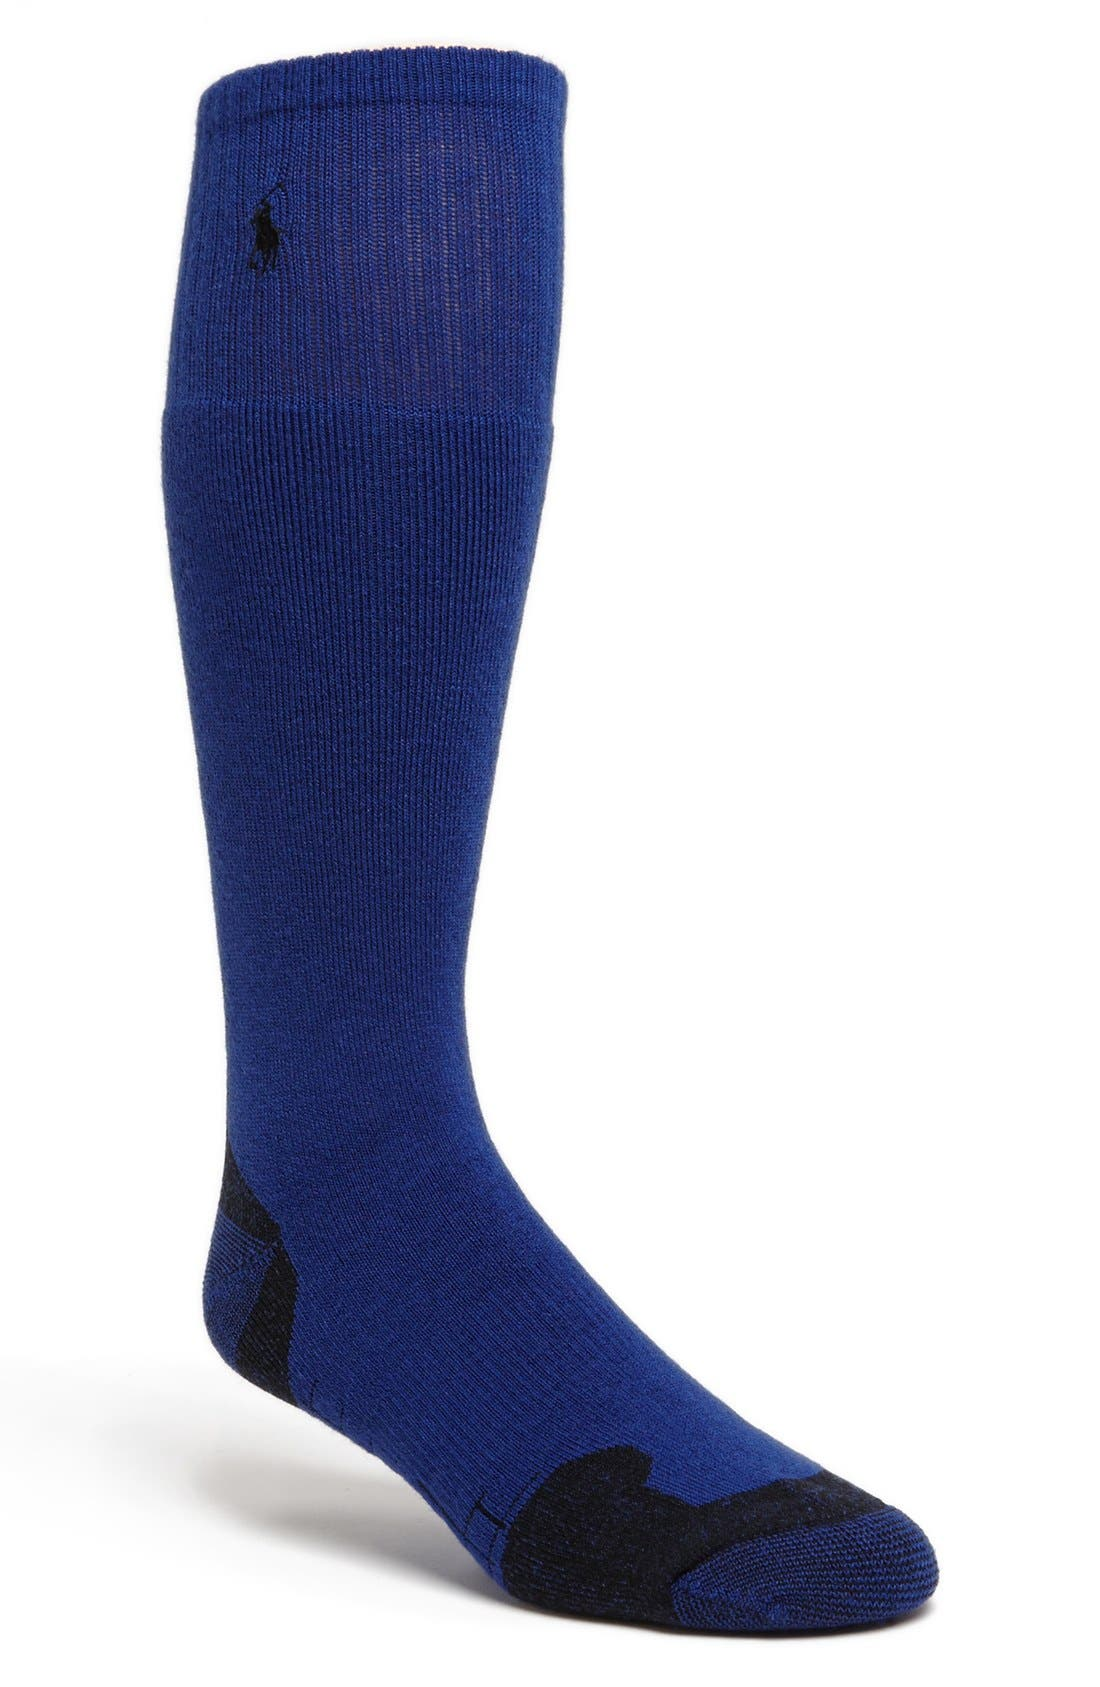 Alternate Image 1 Selected - Polo Ralph Lauren 'Player Pony' Socks